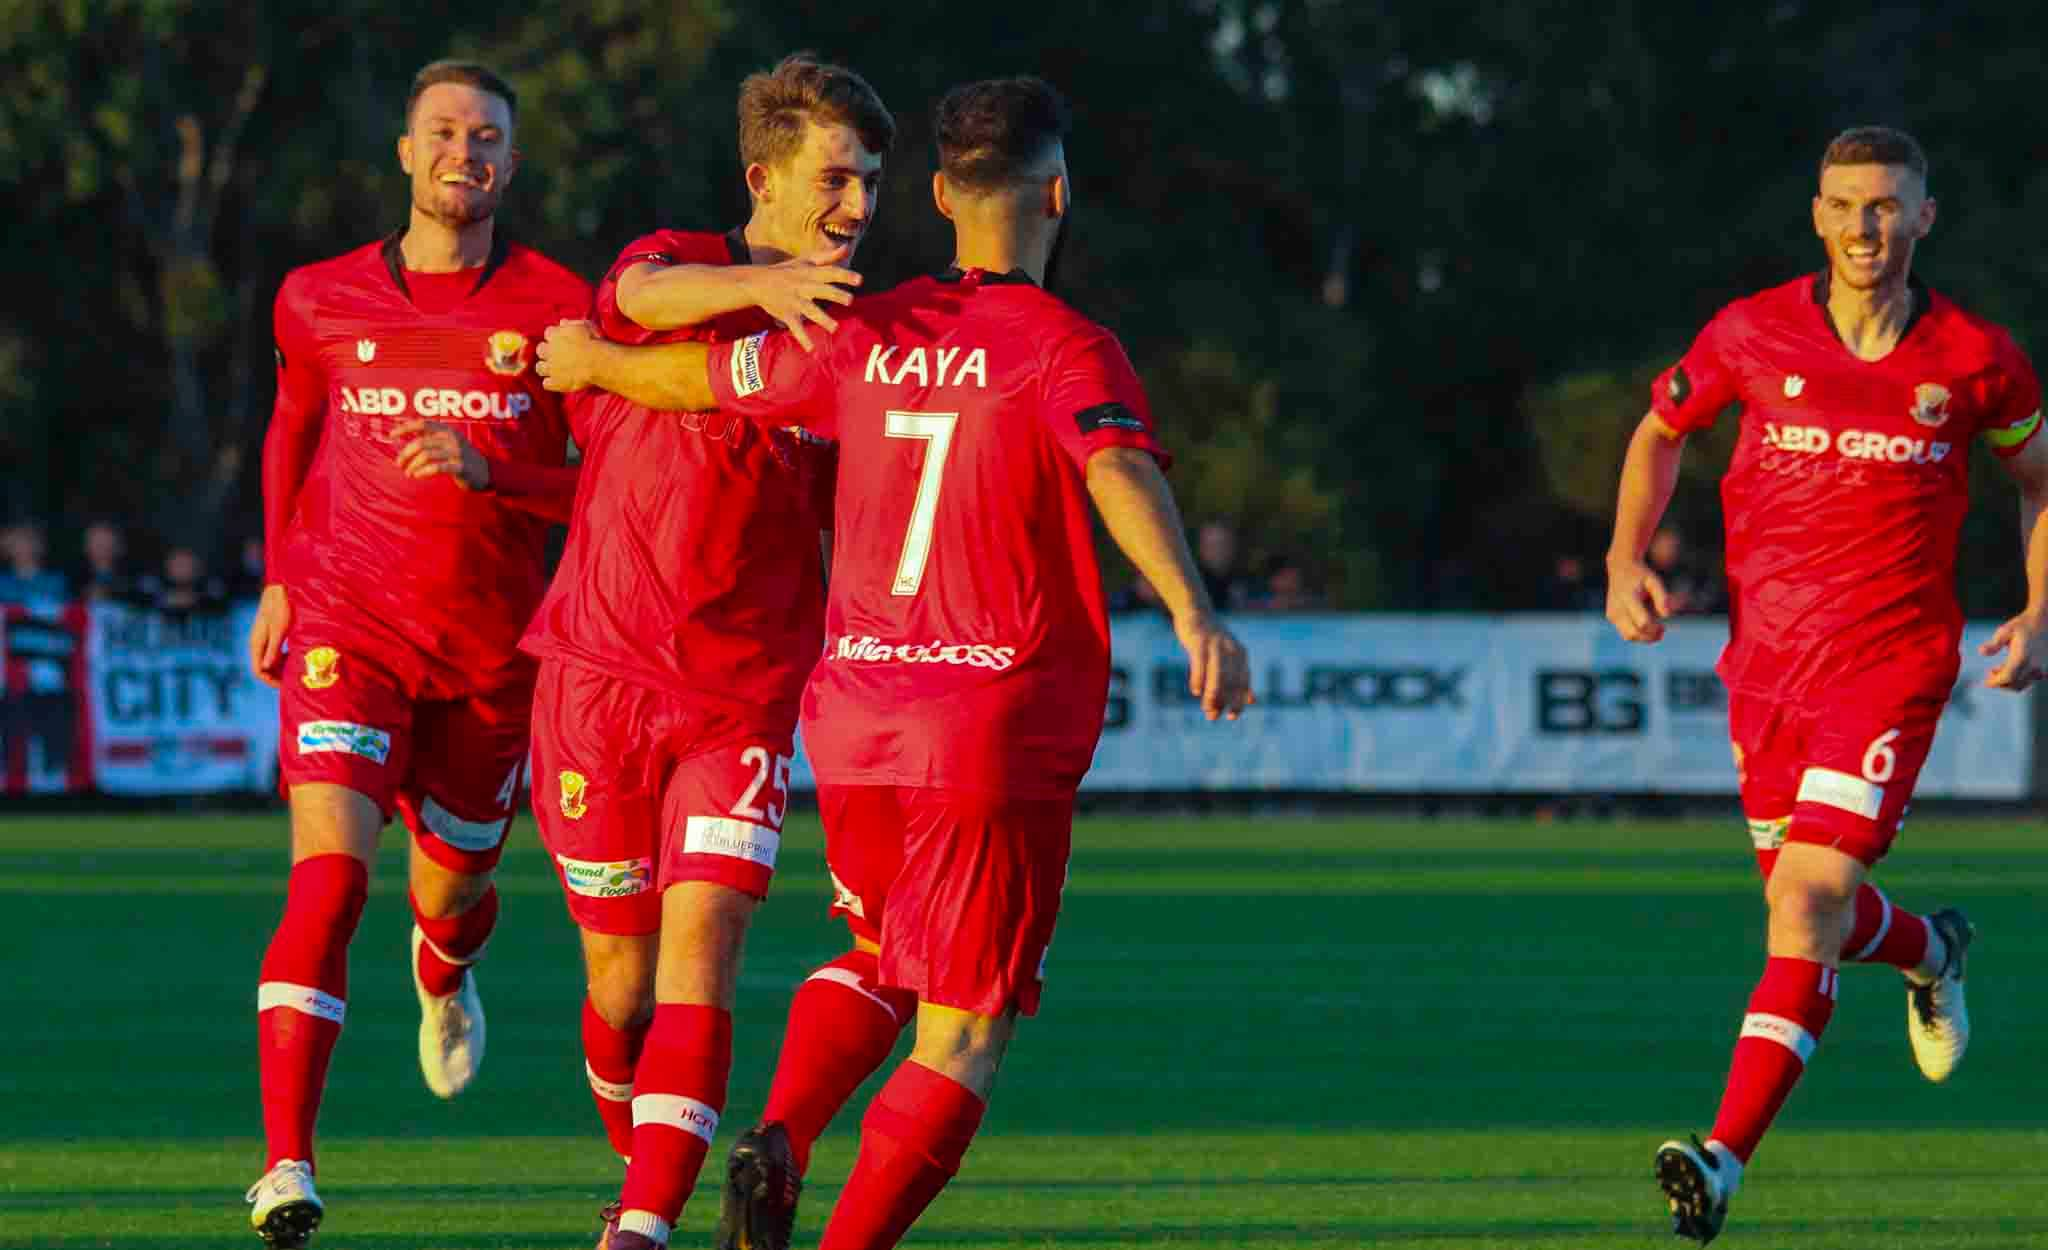 NPL Round 2 Review: Ersin Kaya's early strike earns Hume City all 3 points against Oakleigh Cannons